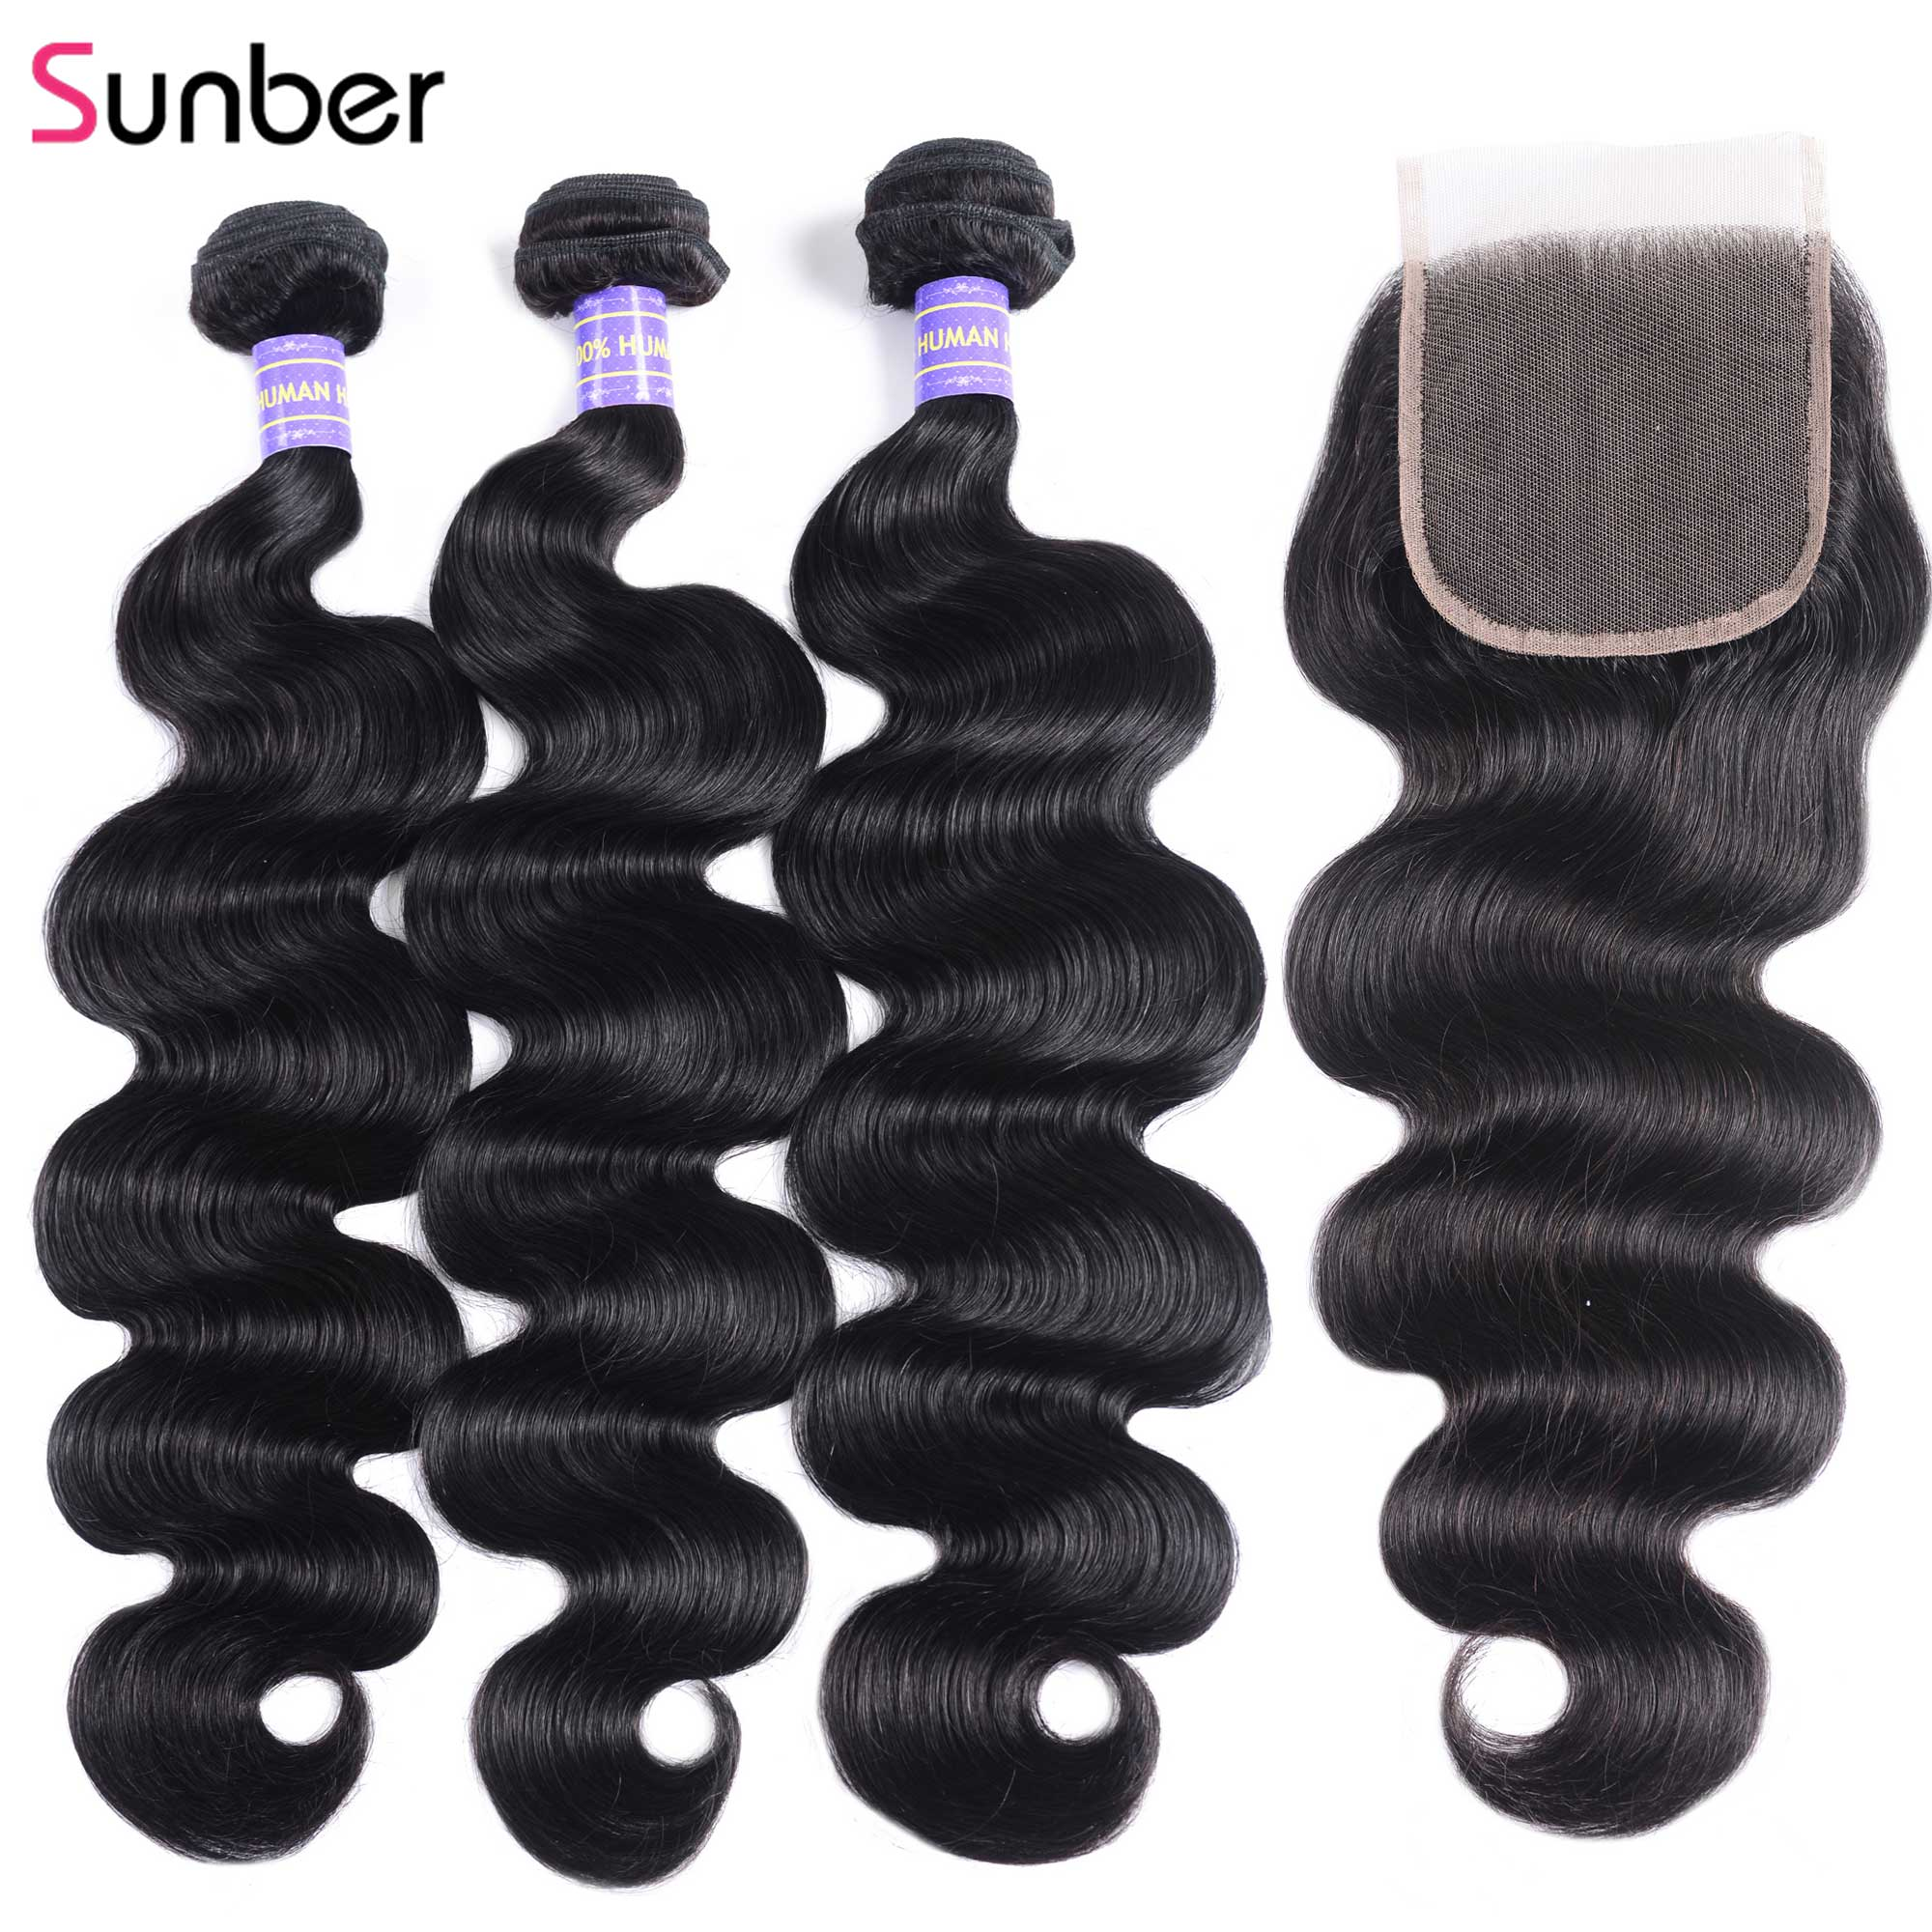 Sunber Hair Indian Hair Body Wave Human Hair Bundles With Closure Remy Hair Extension 8-26 Inch 2/3/4 Bundles With Closure